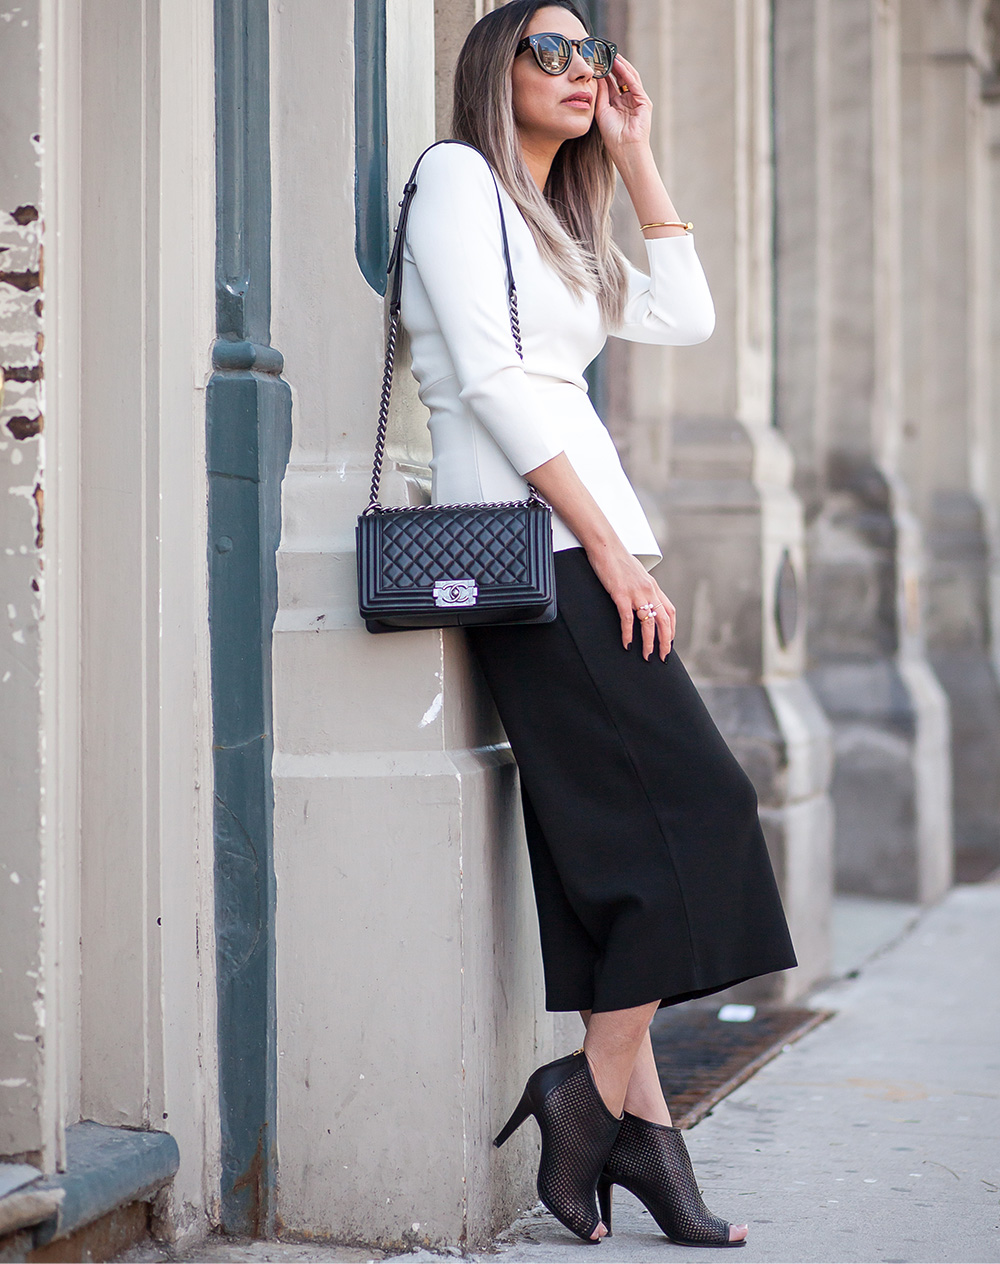 Zara, How to style black and white, Chic in monochrome, Style blogger, influencer in style, Loosing pregnancy weight